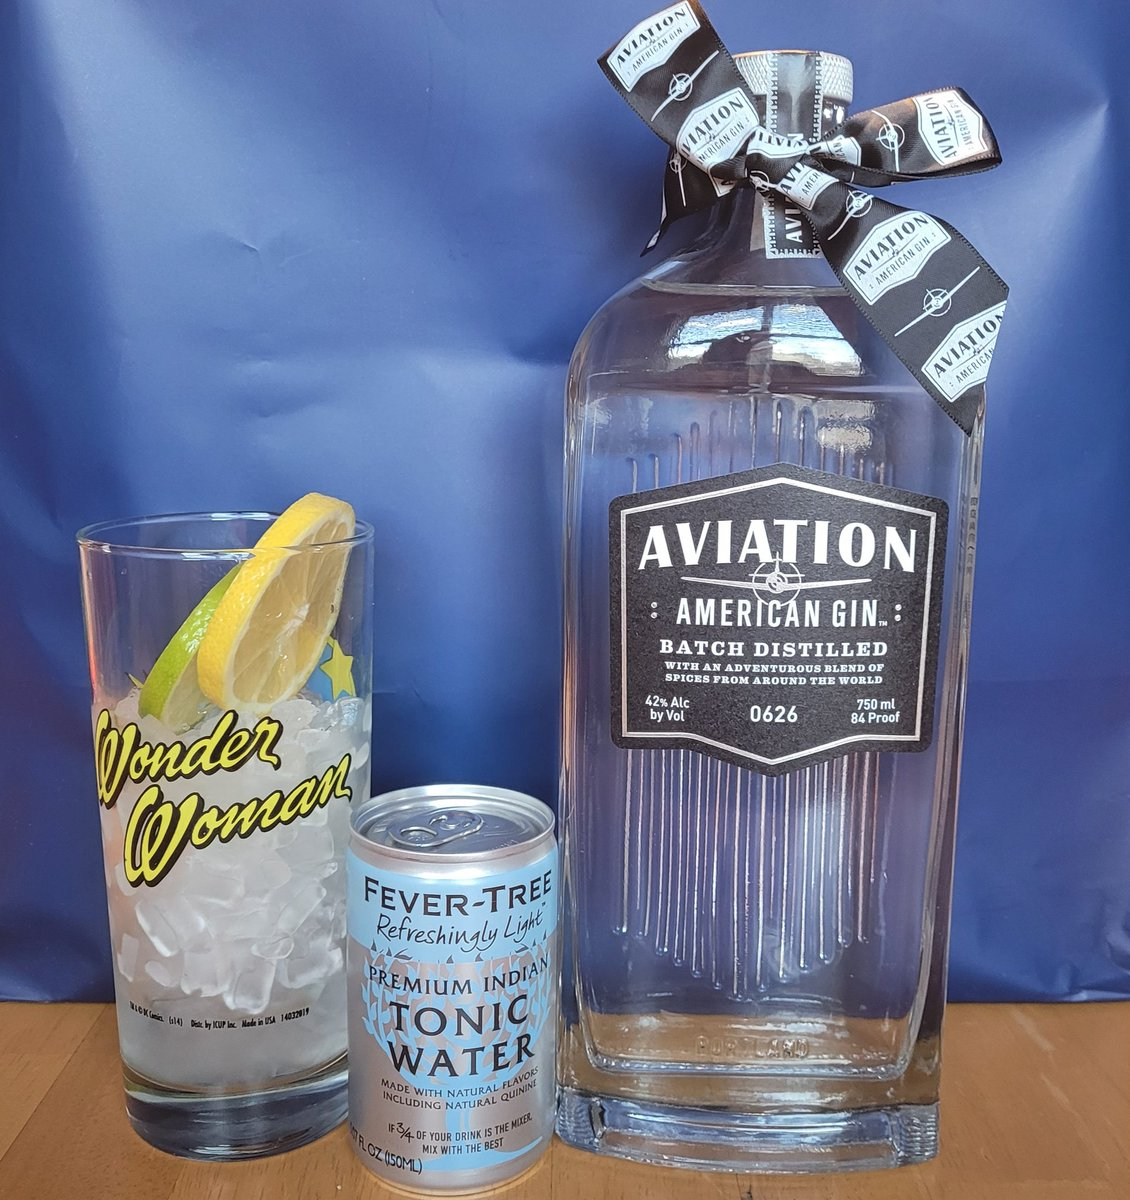 Having my first gin and tonic ever tonight.  Glad it could be yours @VancityReynolds @AviationGin and double thanks for the sweet hair tie with ribbon! I'm wearing that shit tonight.  #ginandtonic